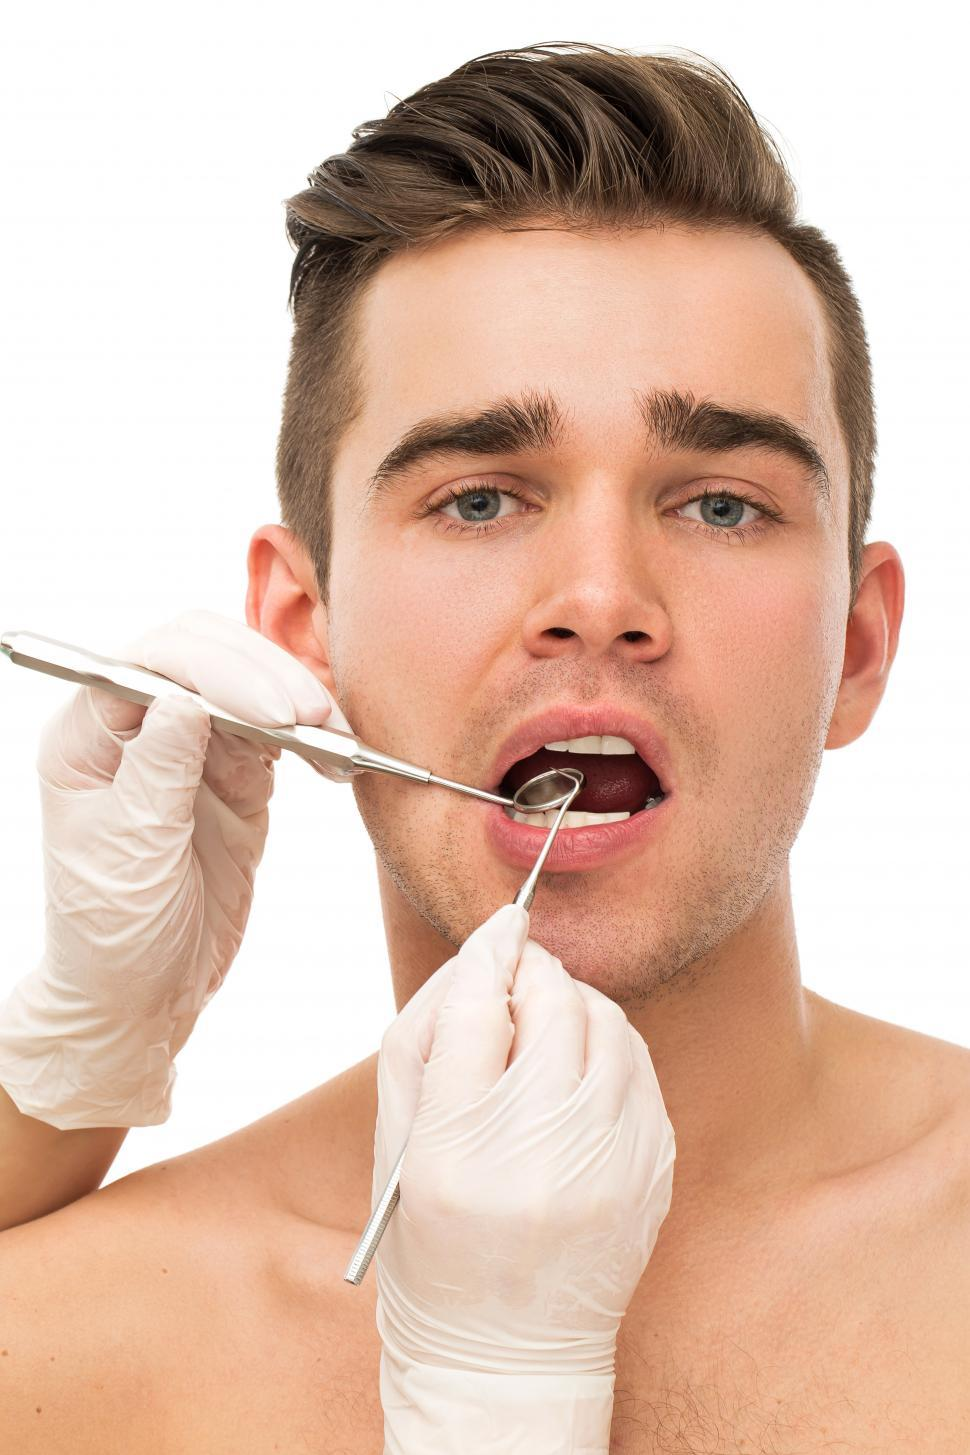 Download Free Stock Photo of Dentistry - Looking for cavities